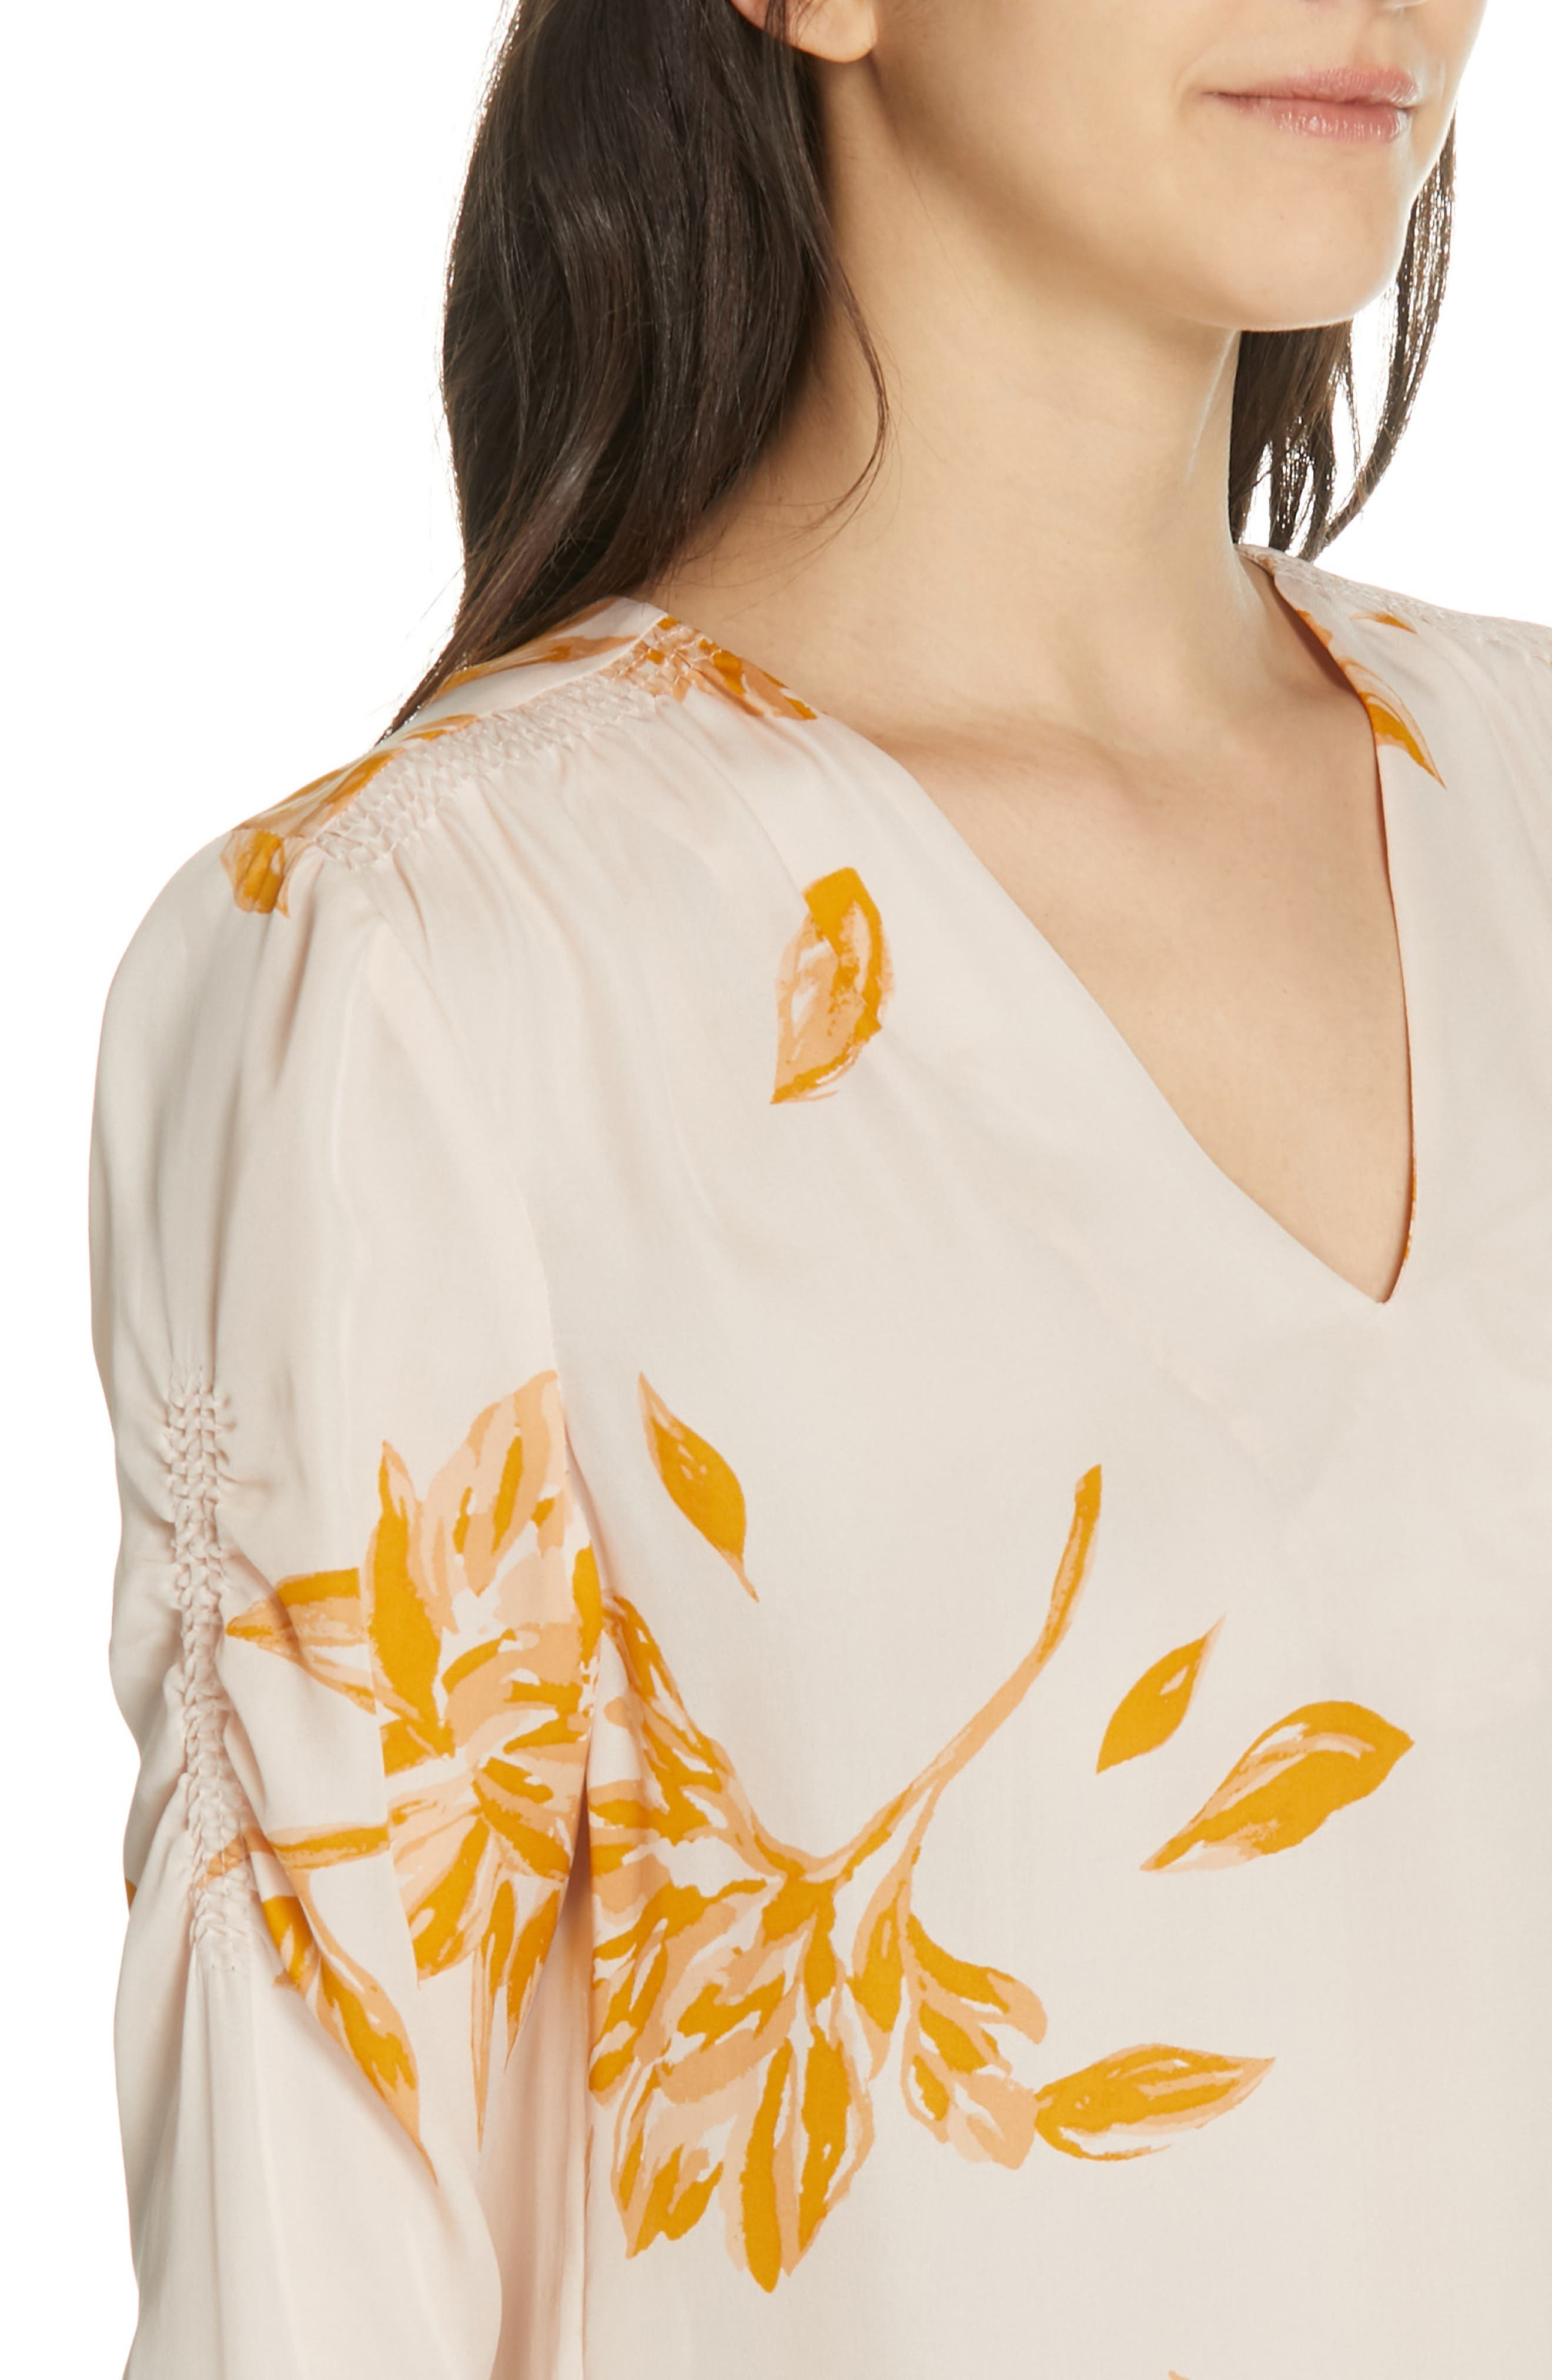 JOIE, Galvin Floral Silk Top, Alternate thumbnail 4, color, SHIMMER